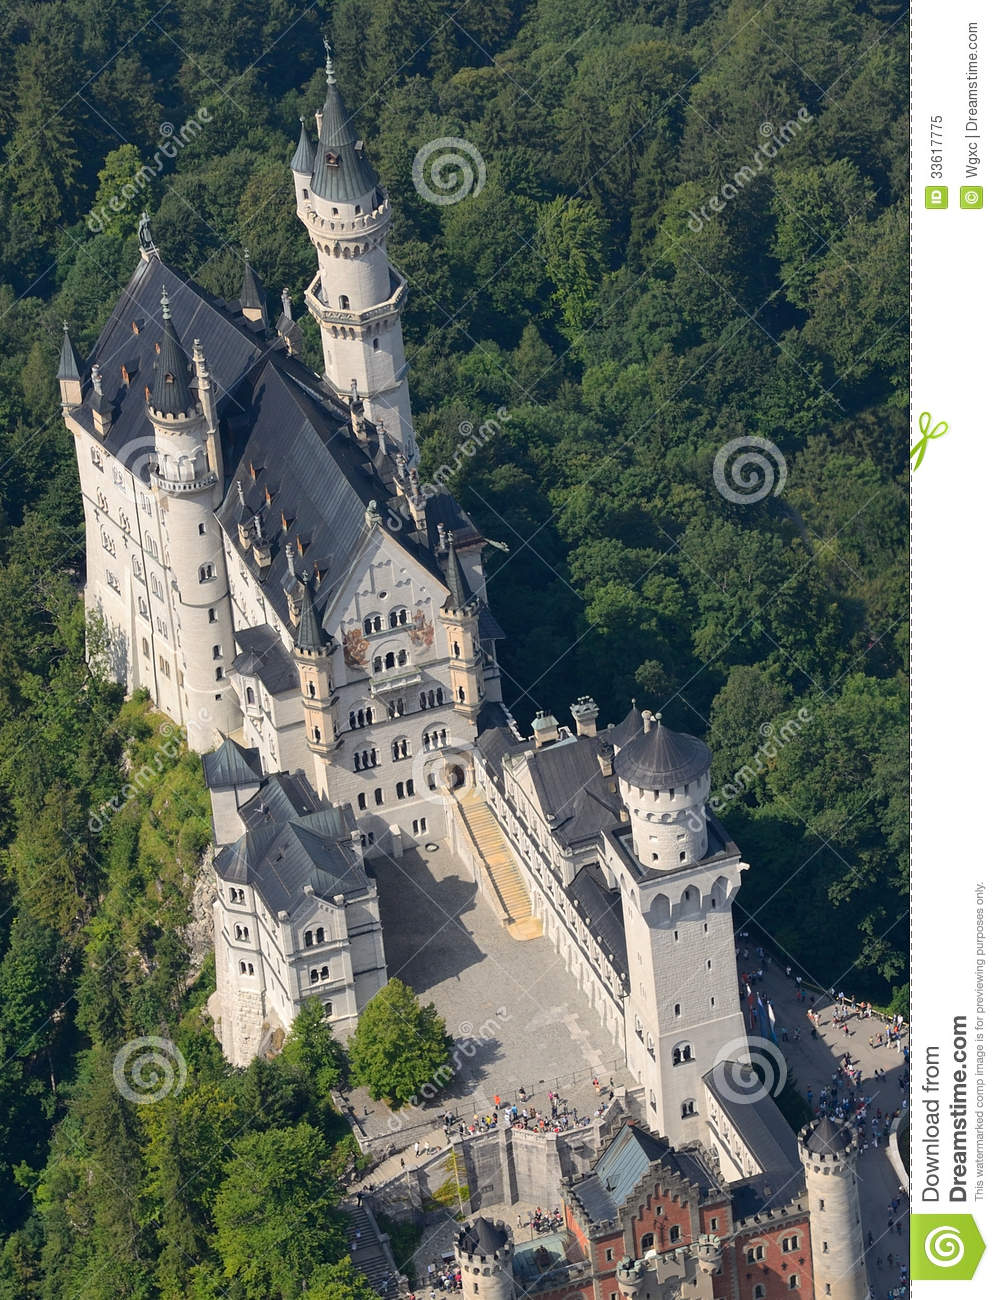 neuschwanstein castle stock image  image of tower  fall